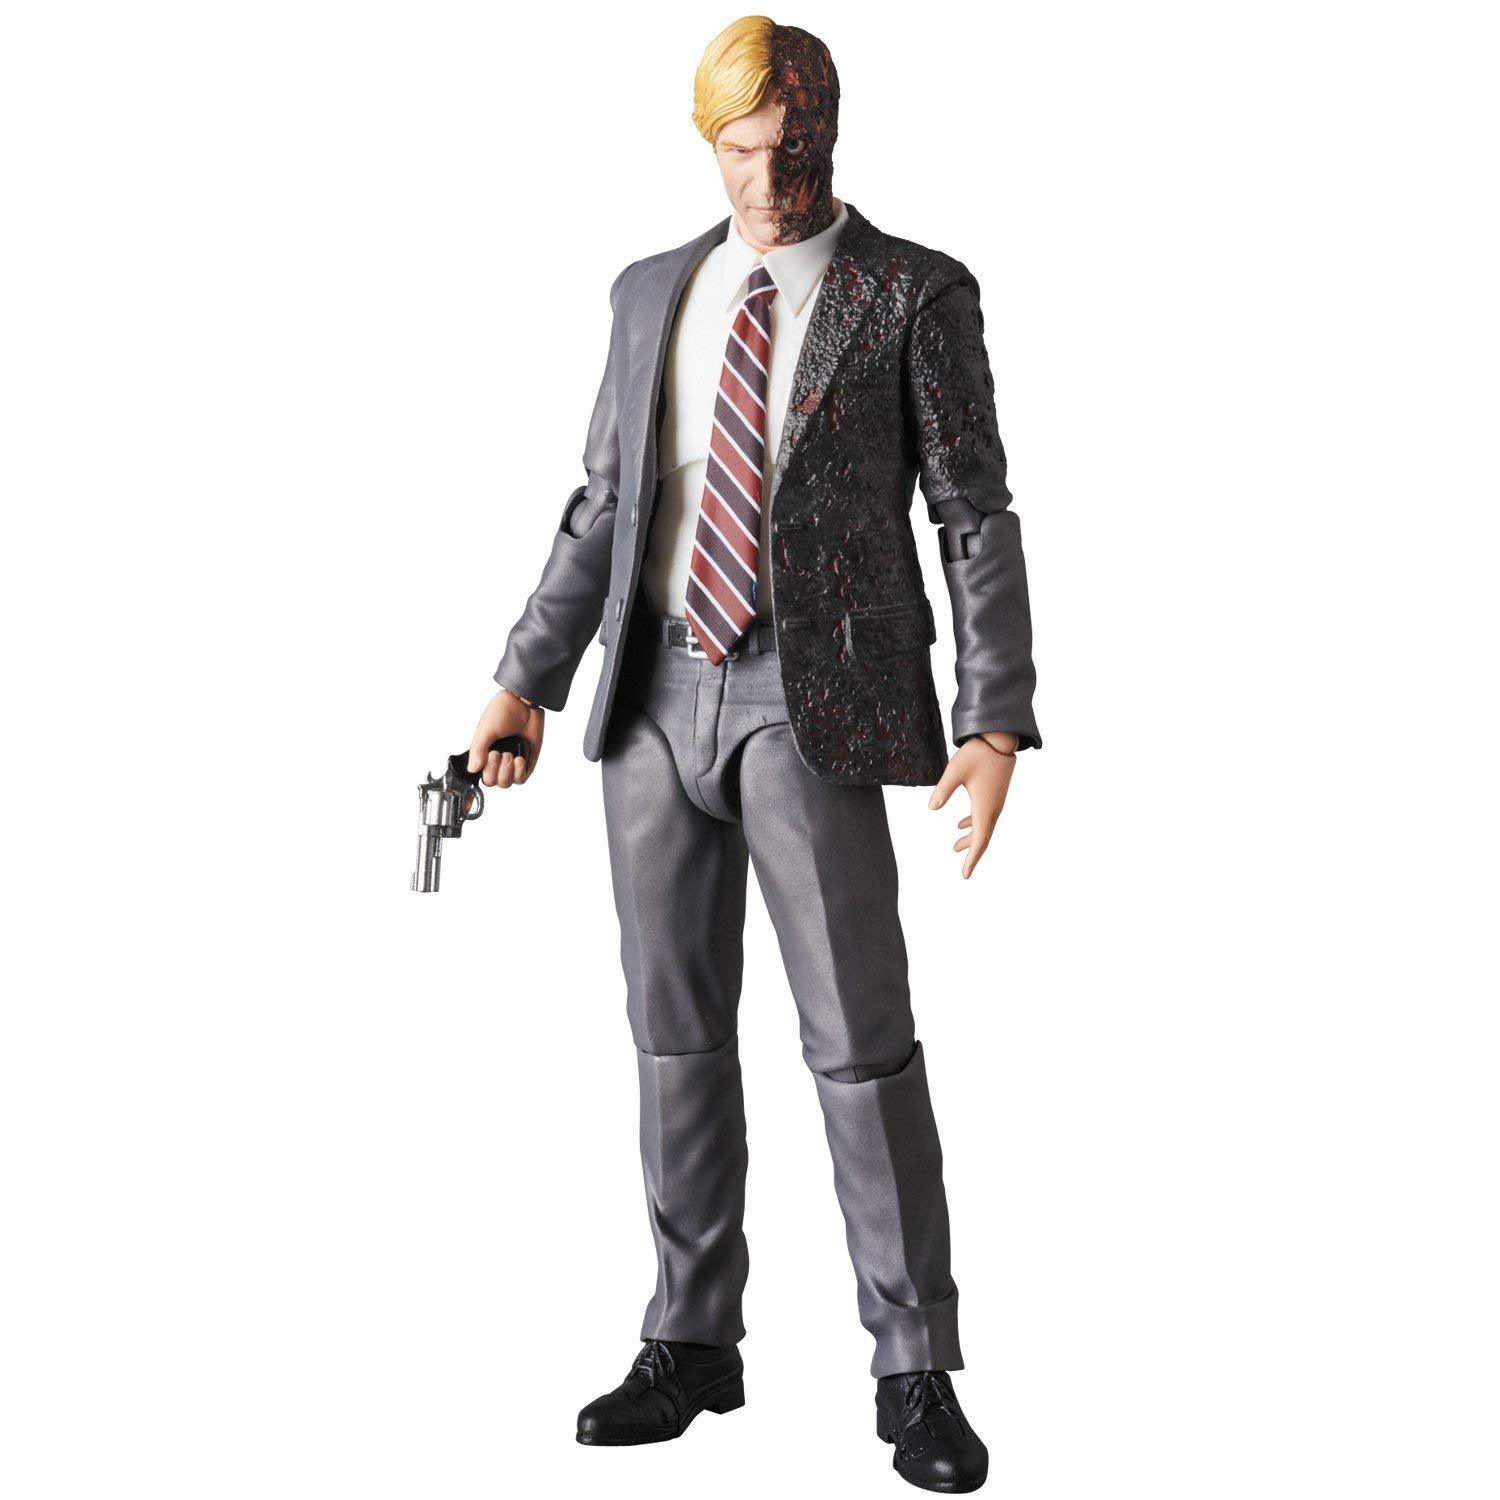 Medicom MAFEX 054 Harvey Dent Figure (The Dark Knight)